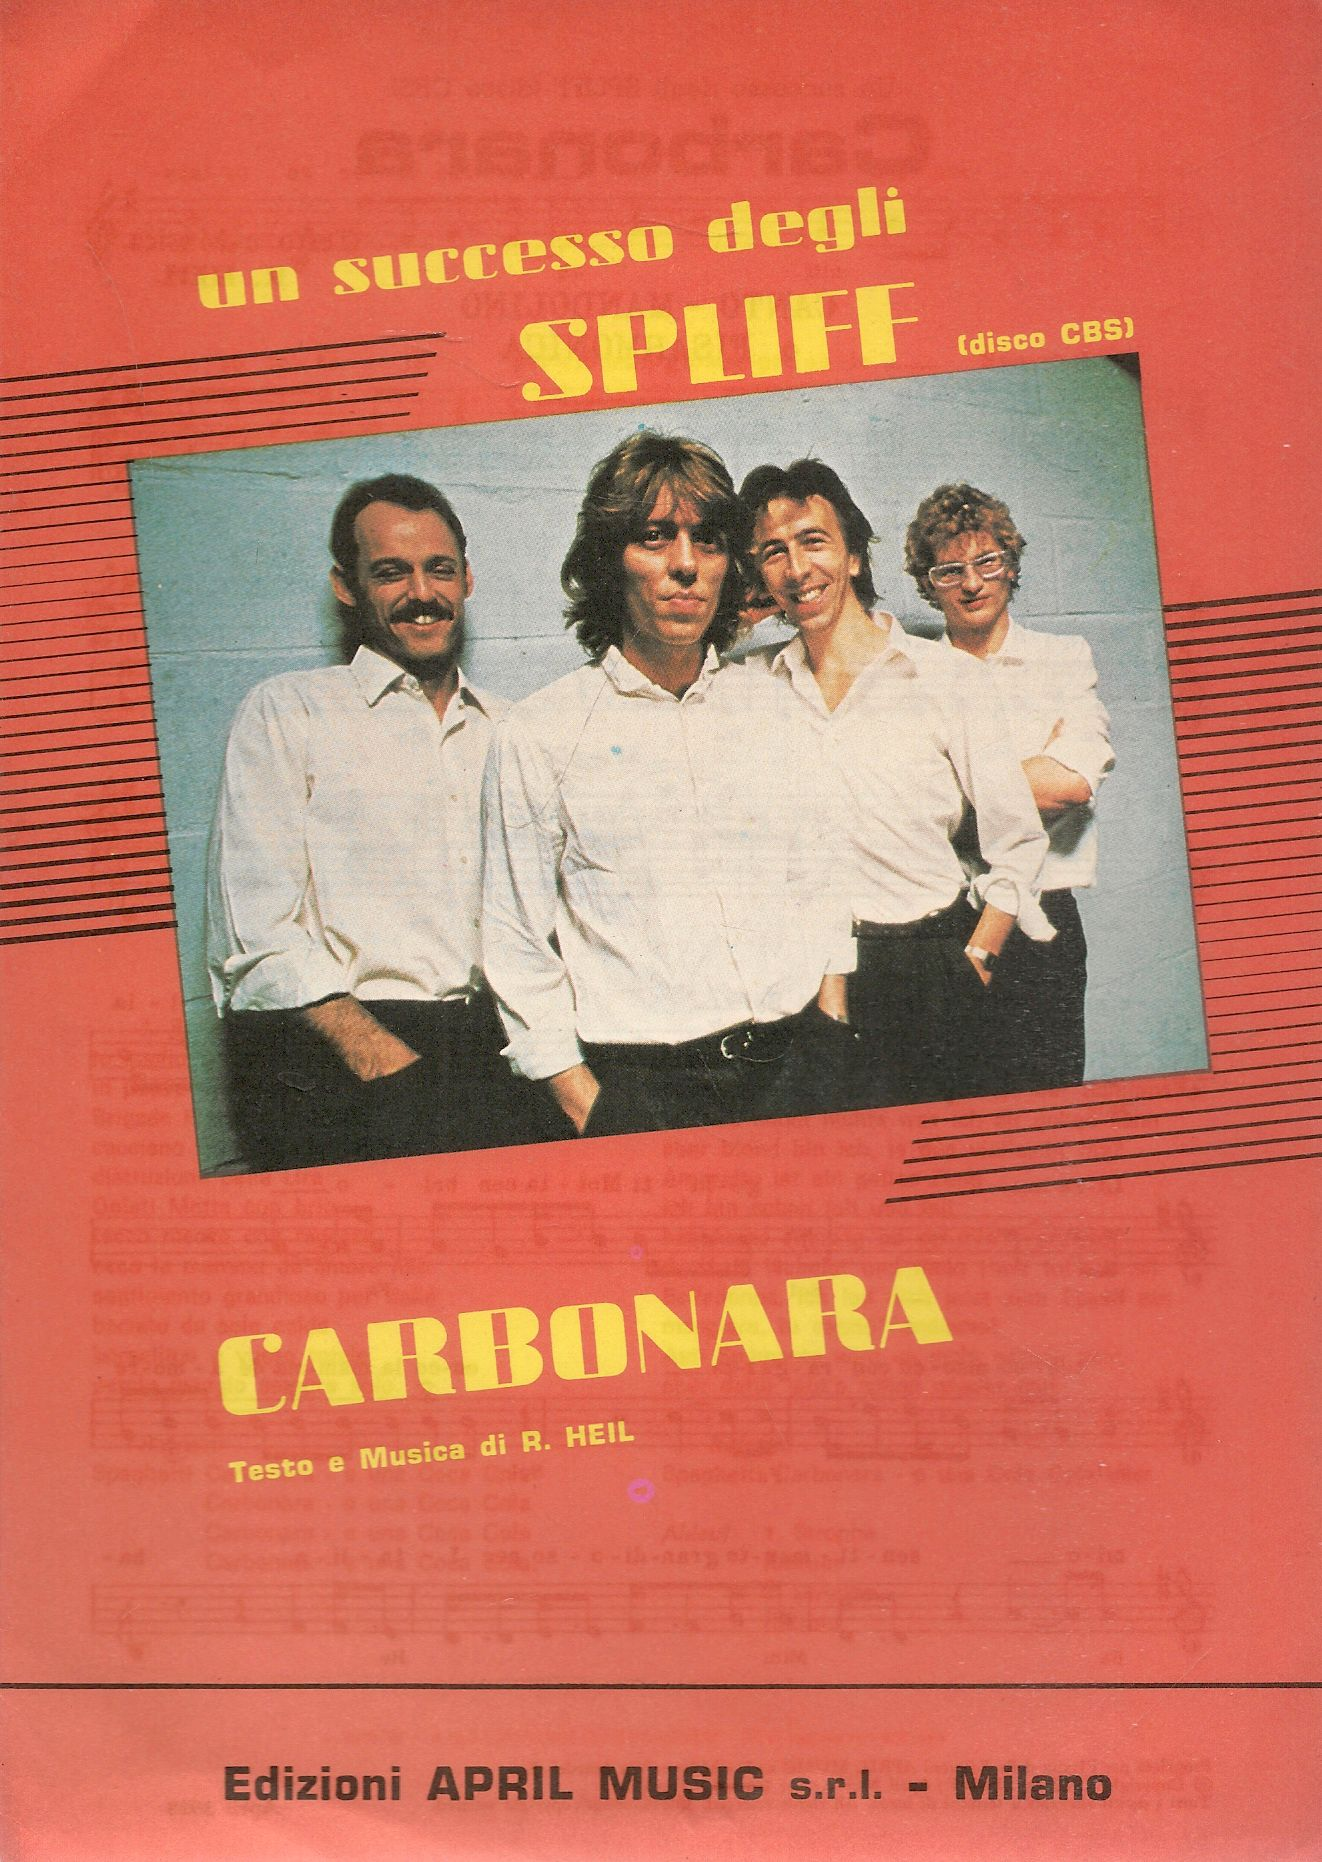 CARBONARA - SPLIFF - SPARTITO-SHEET MUSIC